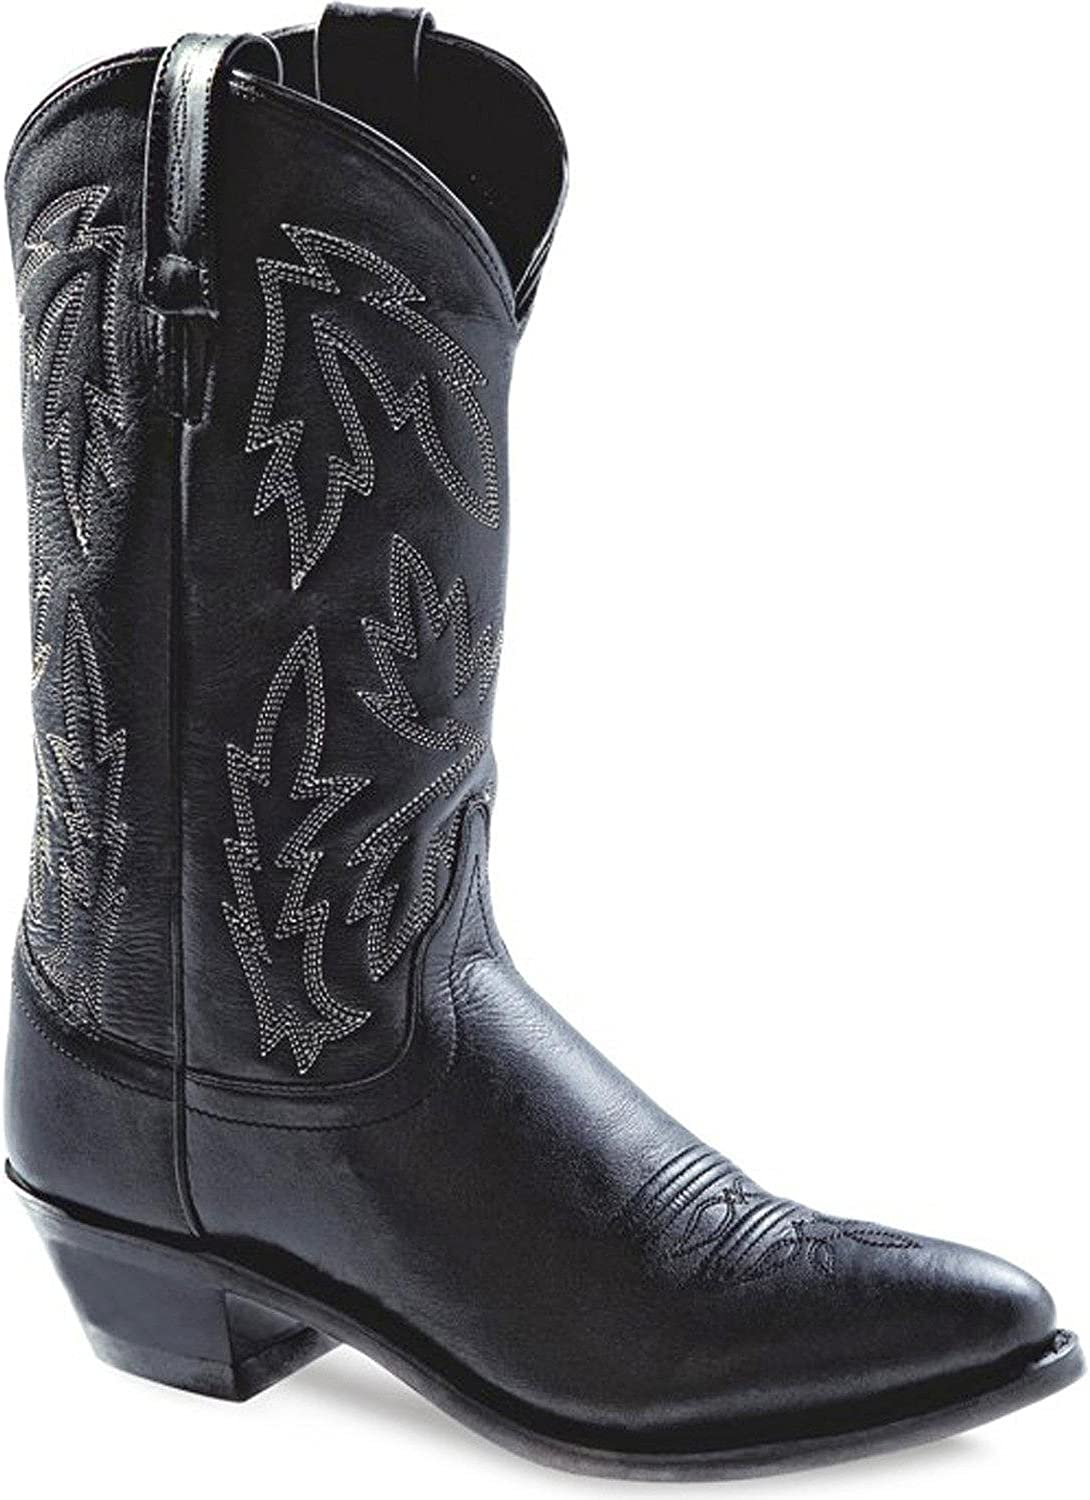 Old West Cowboy Boots Womens Narrow Round Neolite 6.5 M Black OW2010L